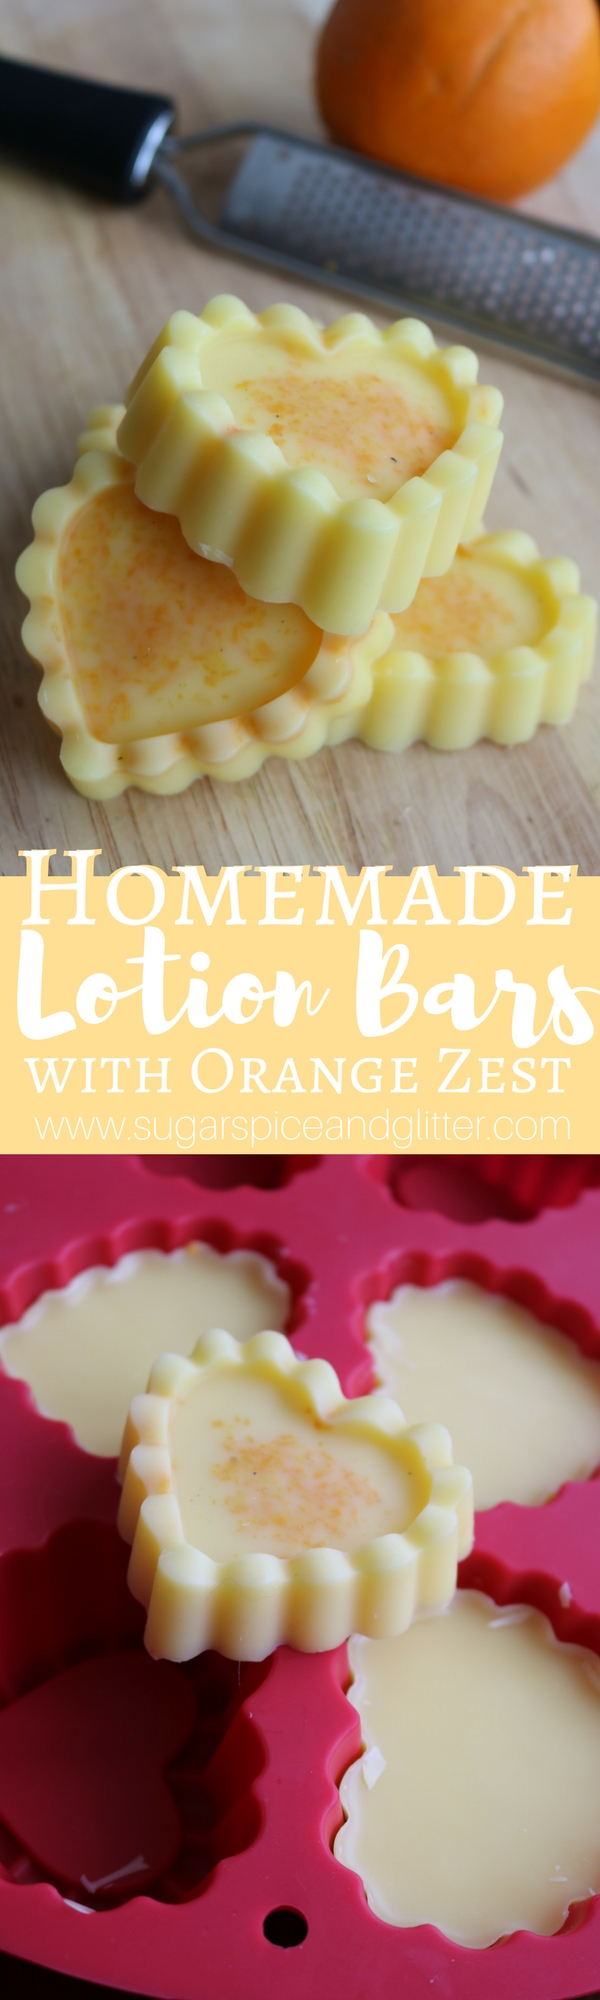 Homemade Lotion Bars with essential oils and fresh orange zest are a great way to moisturize on the go. They are not messy and are perfect for travel or homemade gift giving